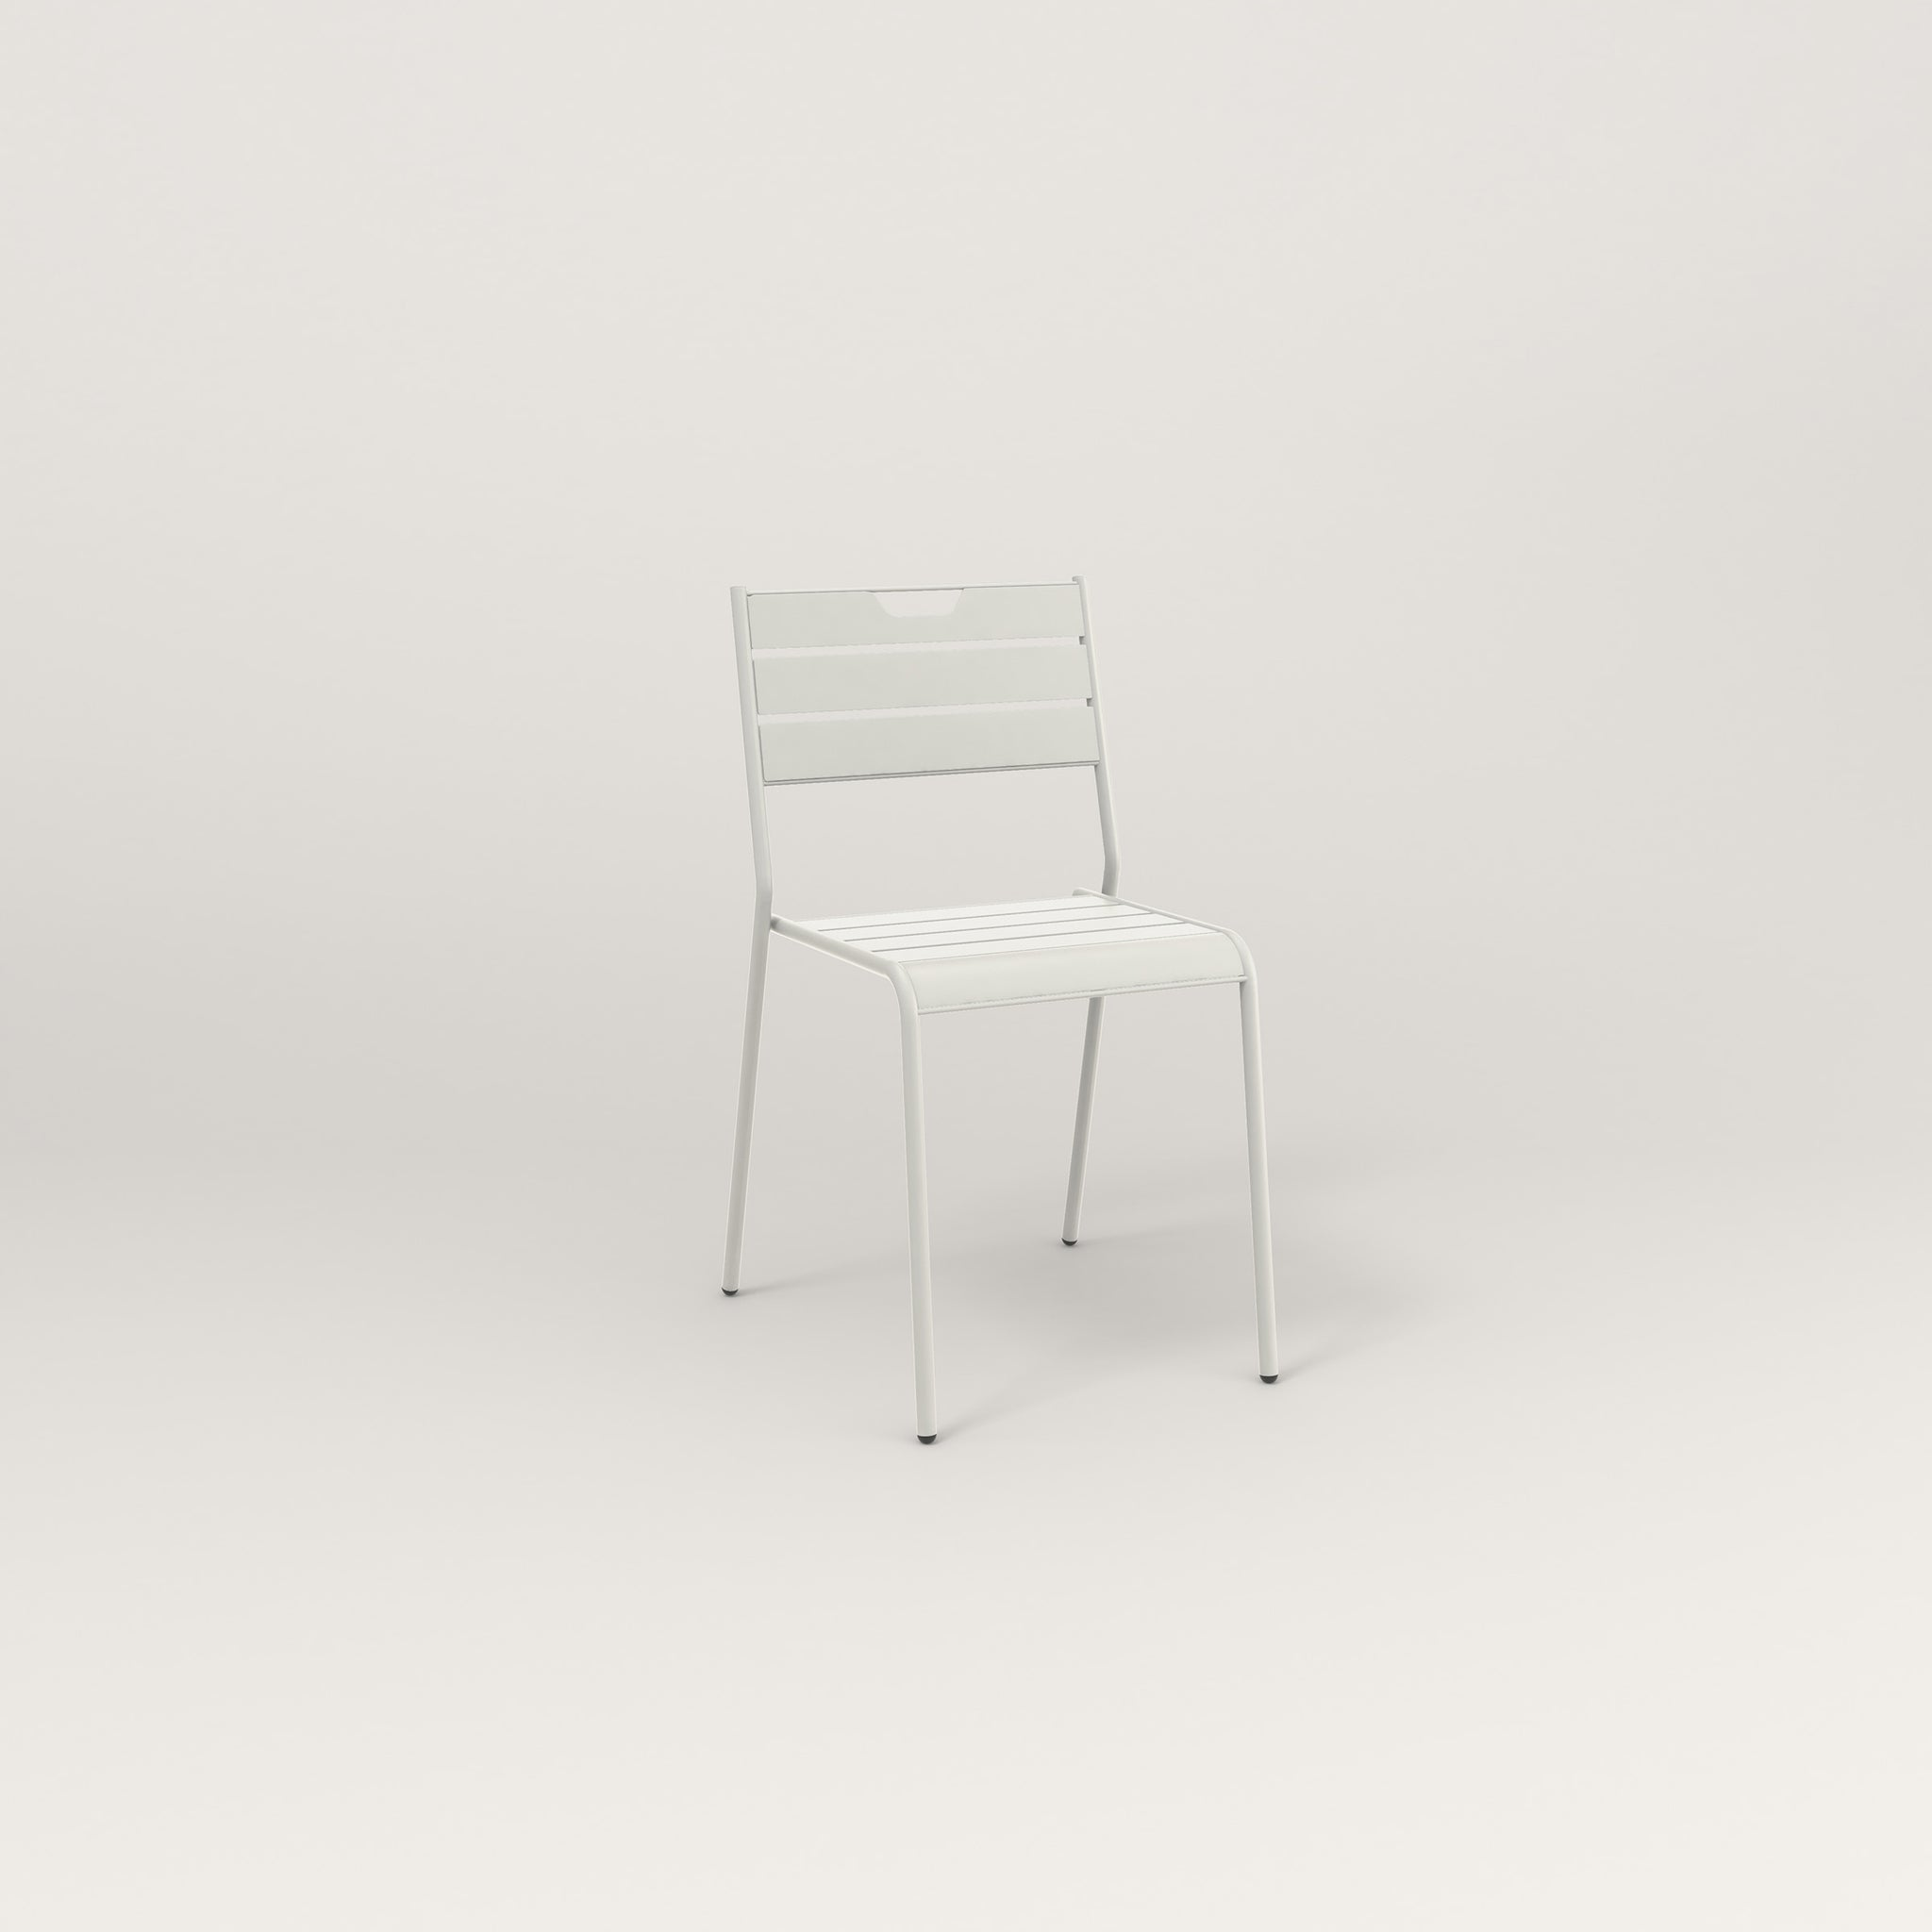 RAD Signature Dining Chair Slatted Steel in white powder coat.